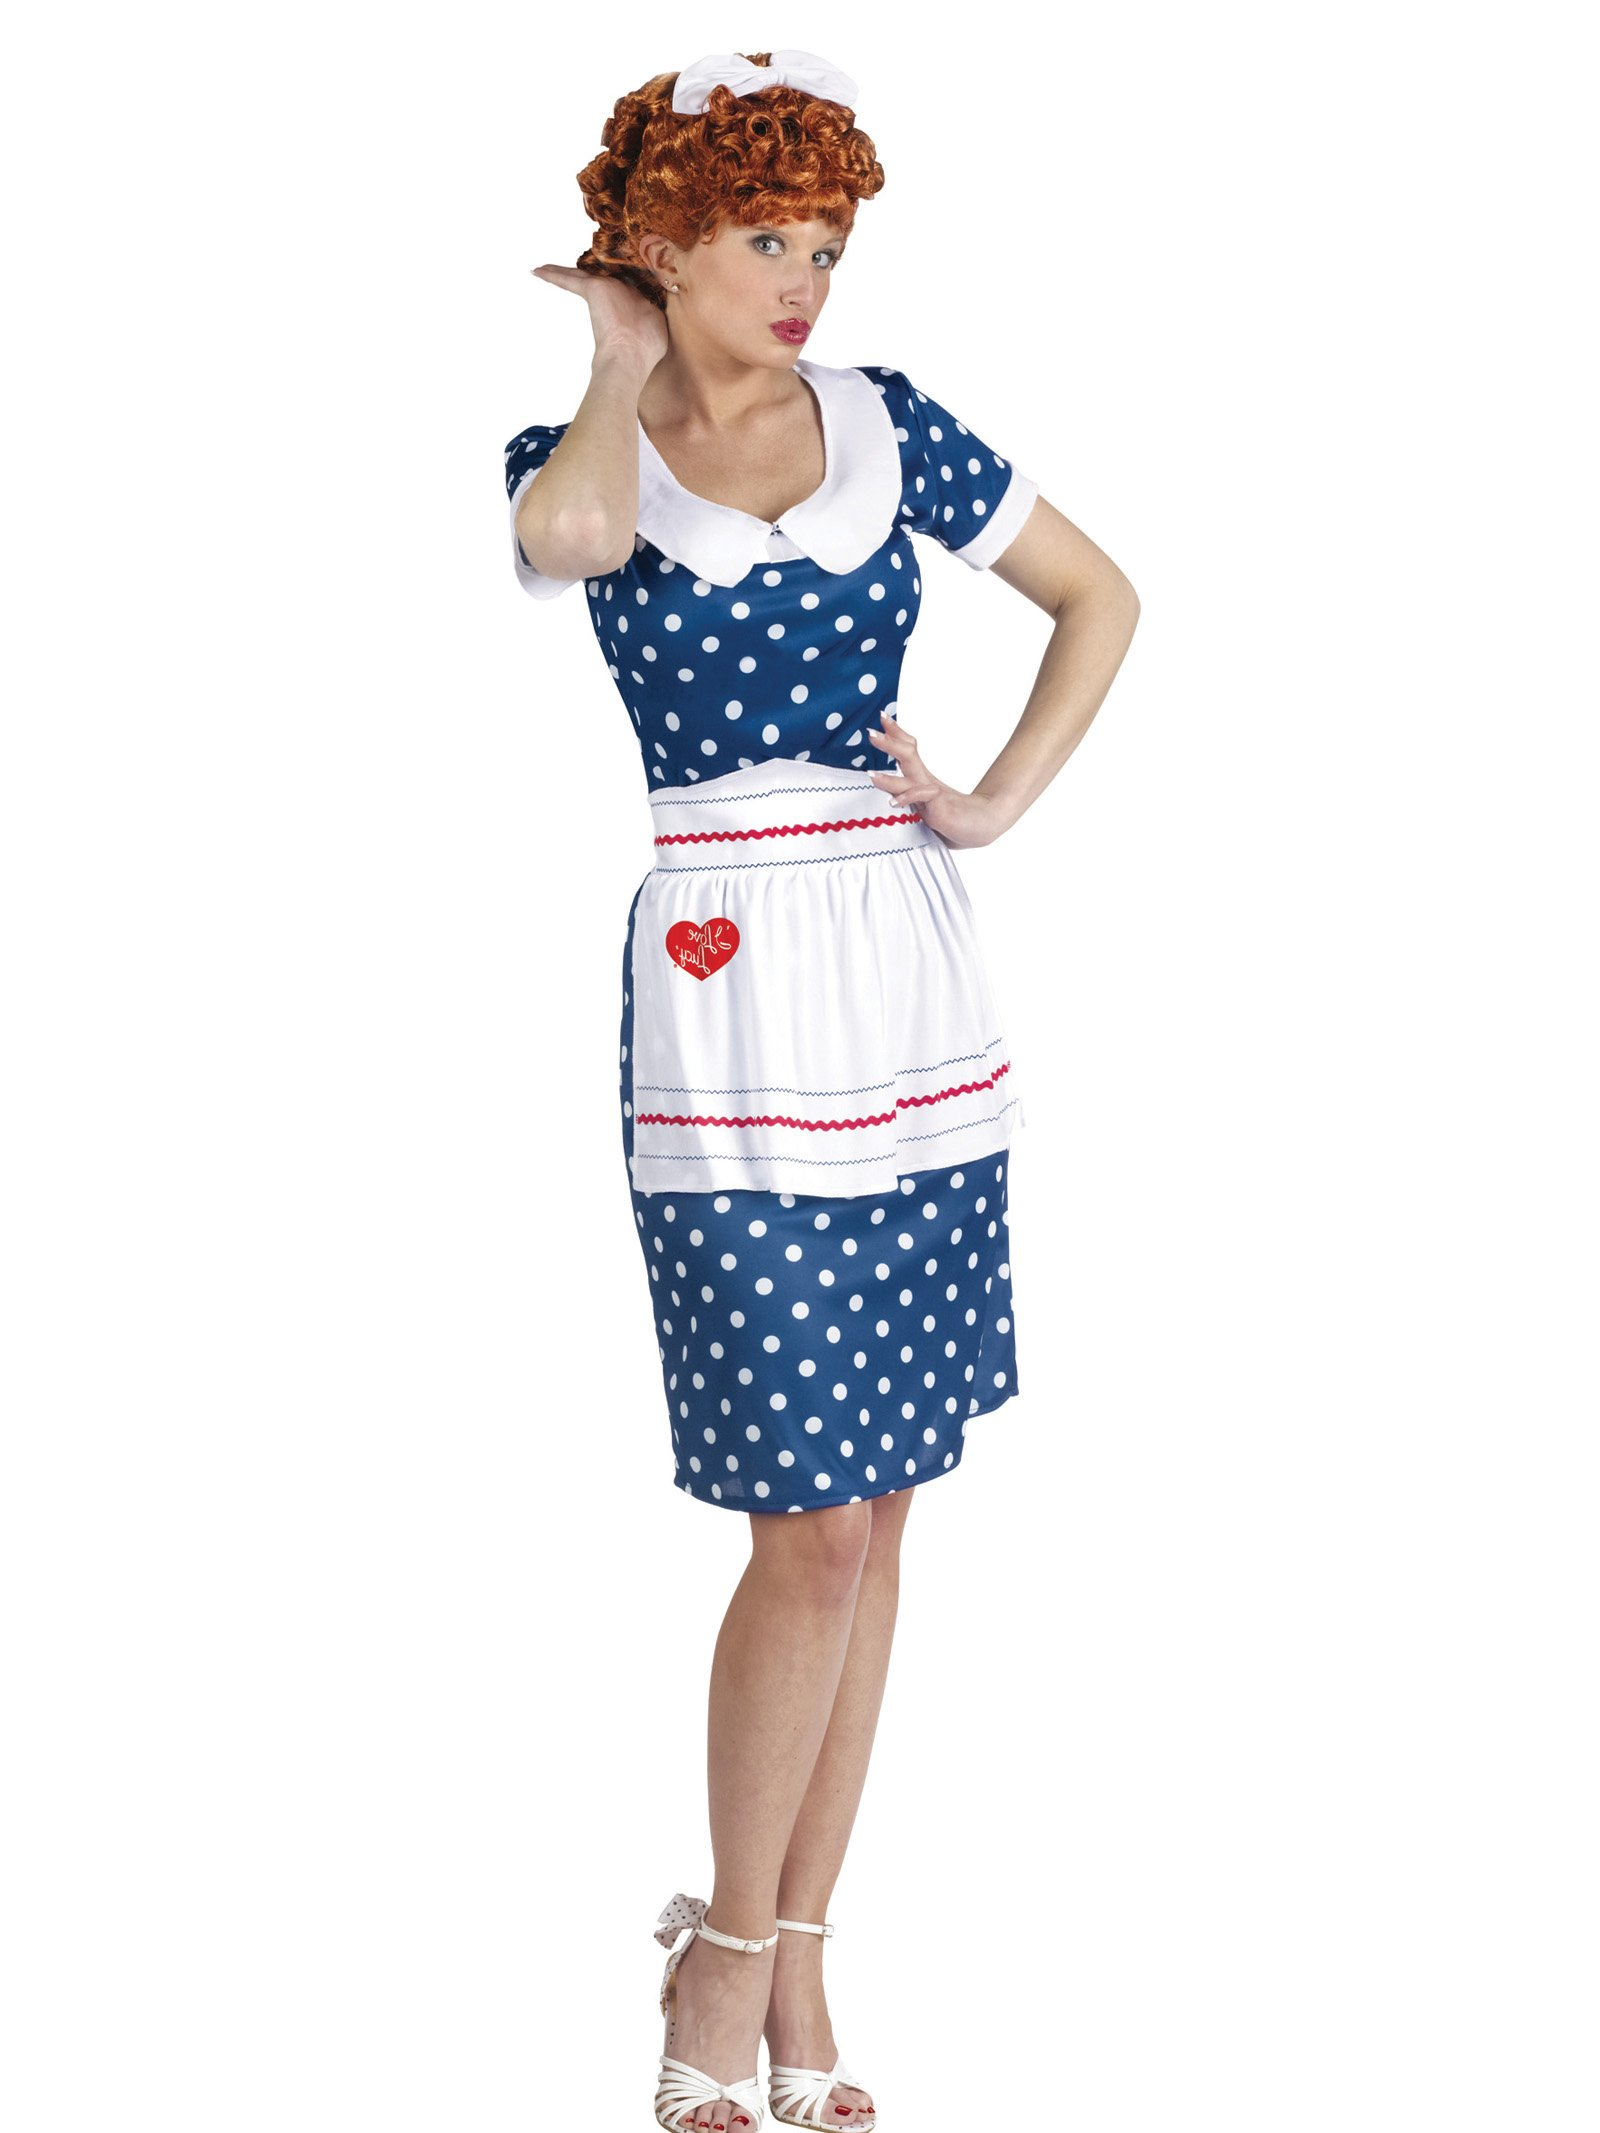 I Love Lucy Costume Blue Polka Dot Dress Apron and Wig Women Theatrical Costume Sizes: Medium-Large